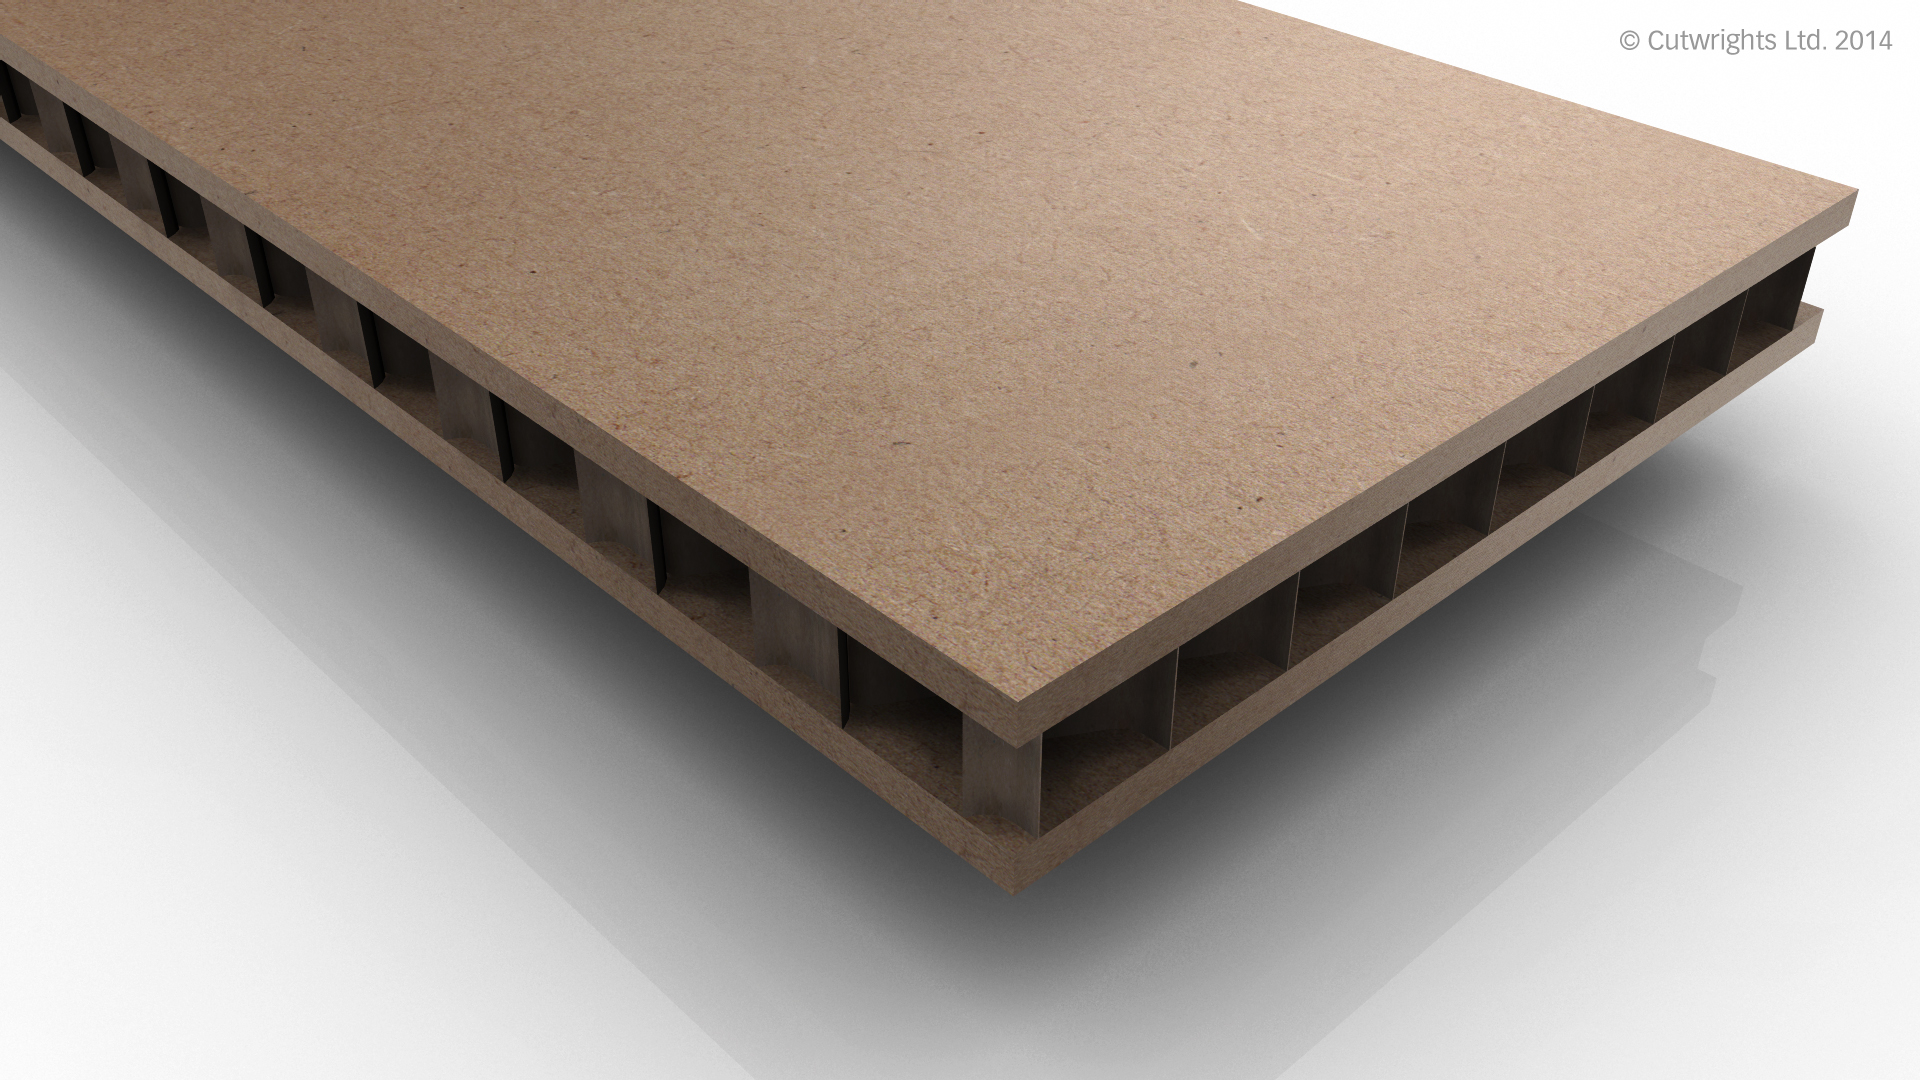 Mdf 22mm 22mm Raw Cw Lite Hollowcore Hollow Core Board Cutwrights